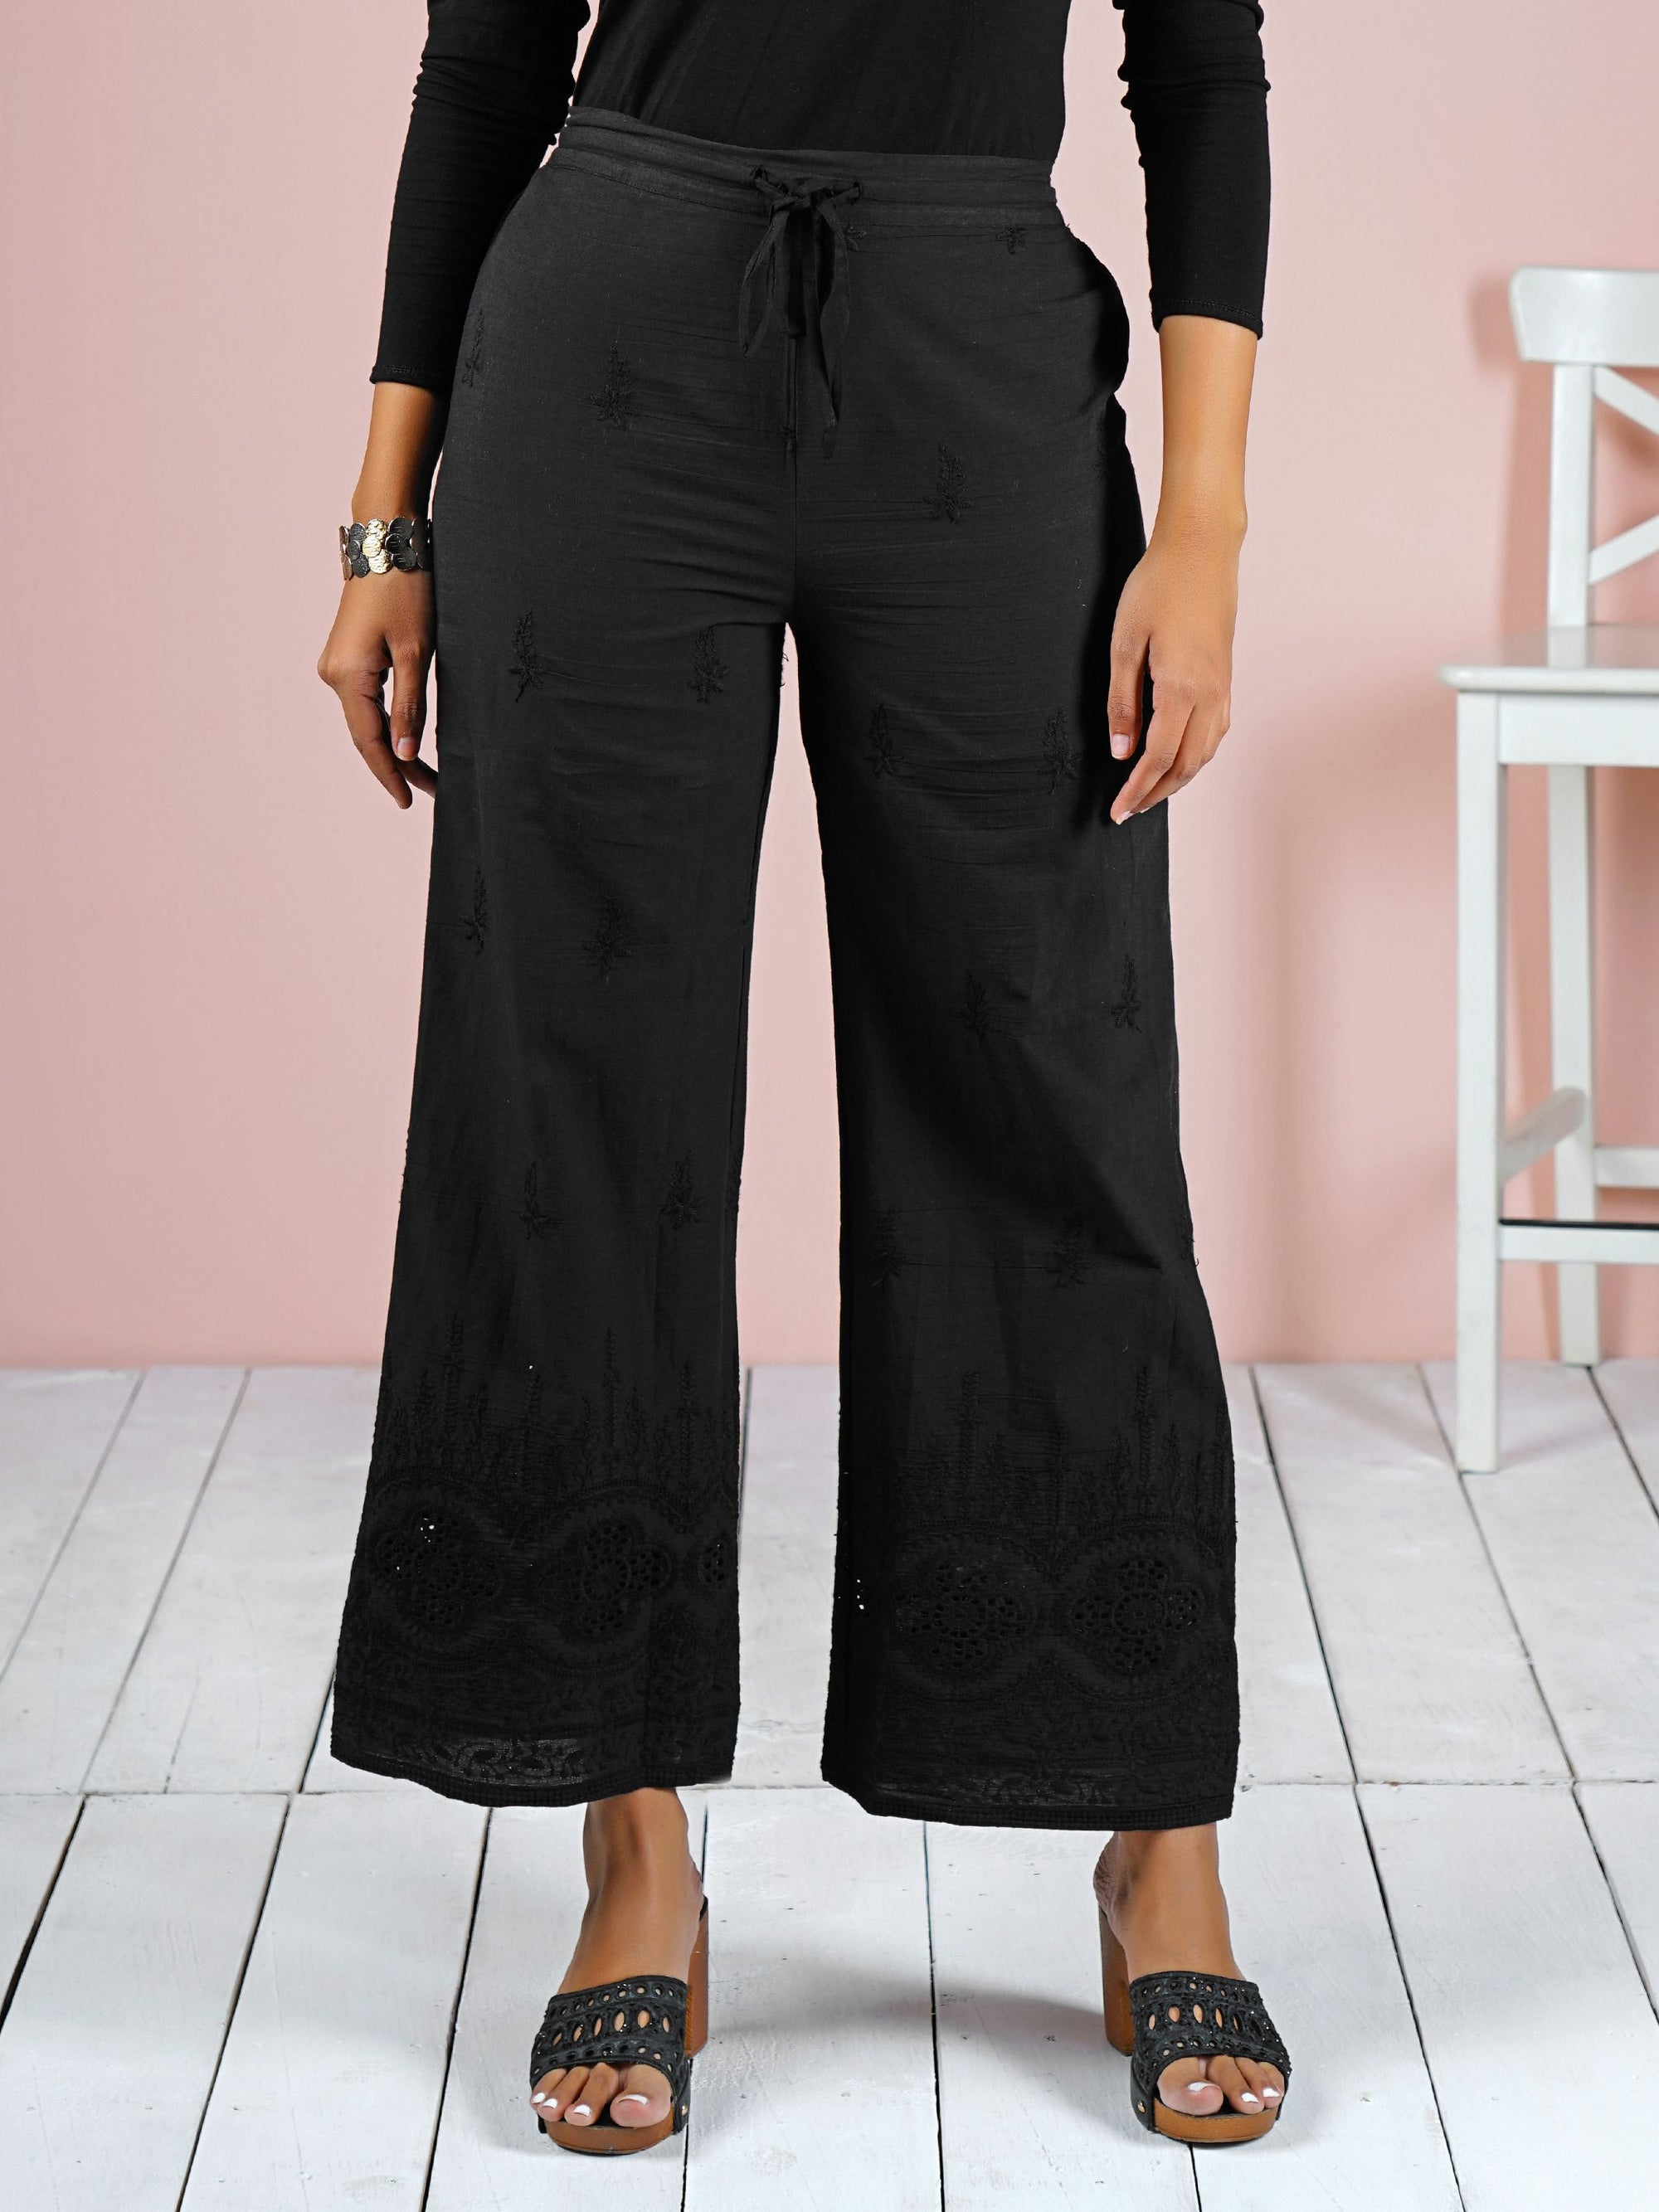 Floral Embroidered Schiffli Palazzo Pants - Black